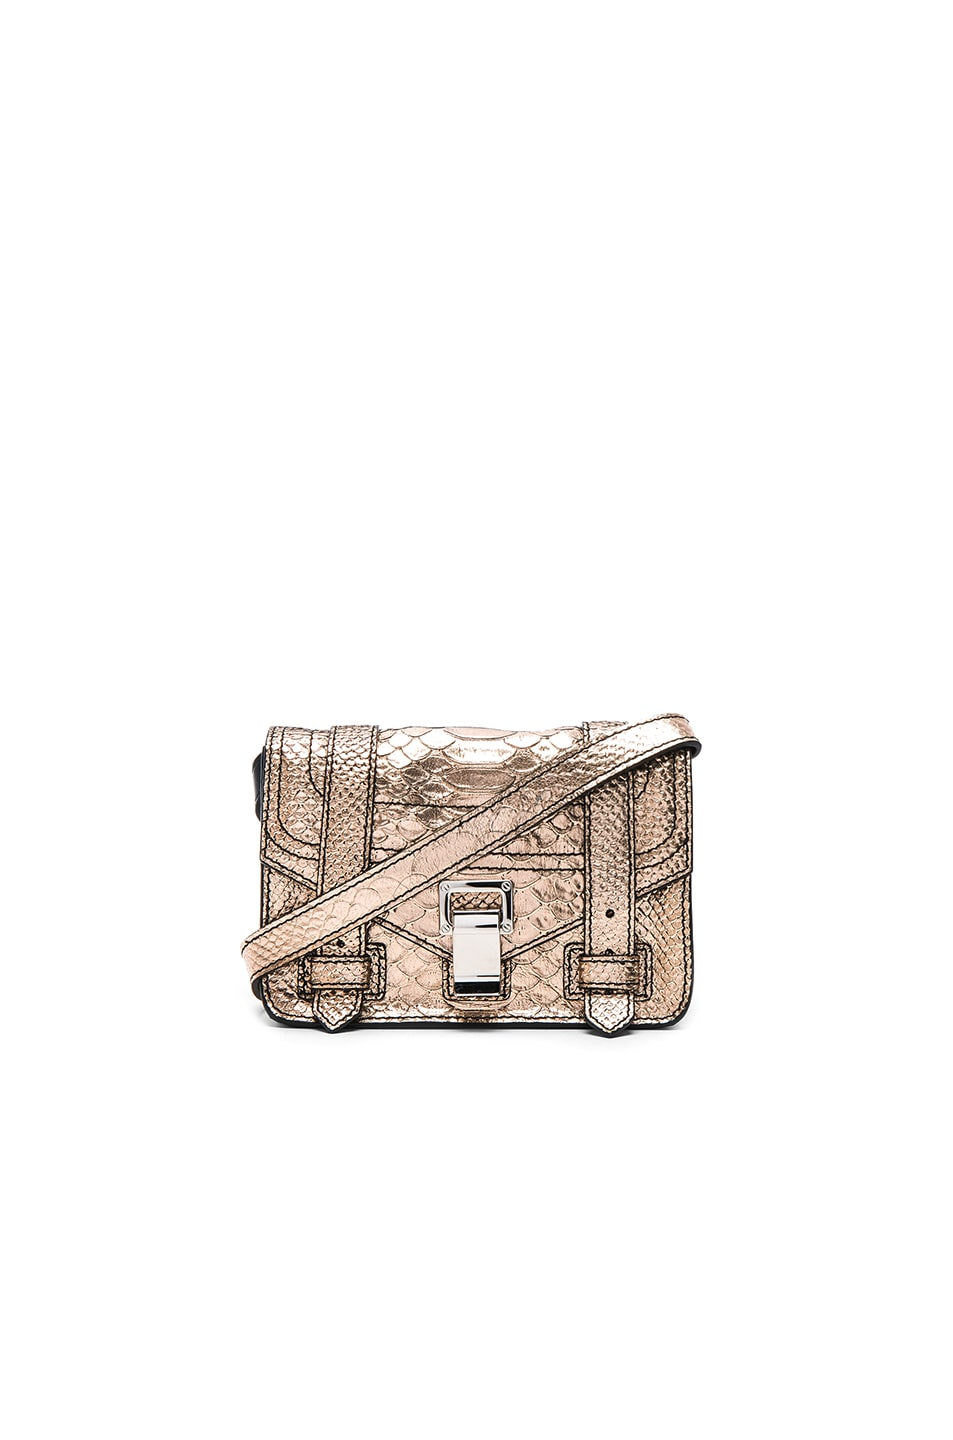 Discussion on this topic: Want: A Python-Printed Proenza Schouler Wallet For , want-a-python-printed-proenza-schouler-wallet-for/